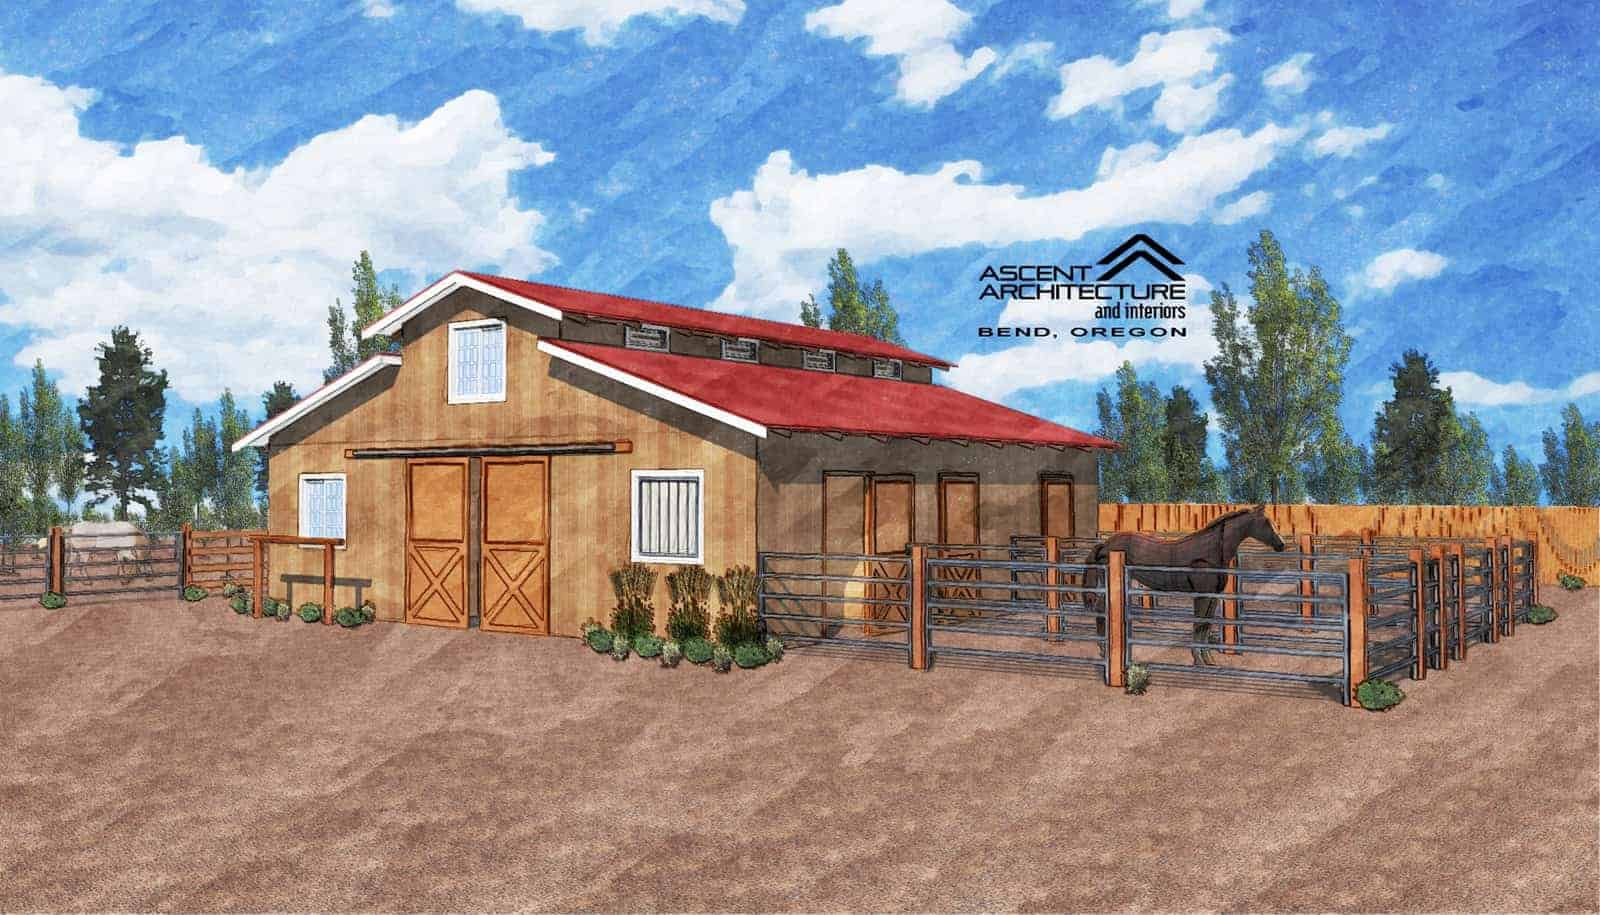 Building a Horse Property From the Ground Up  The Horse